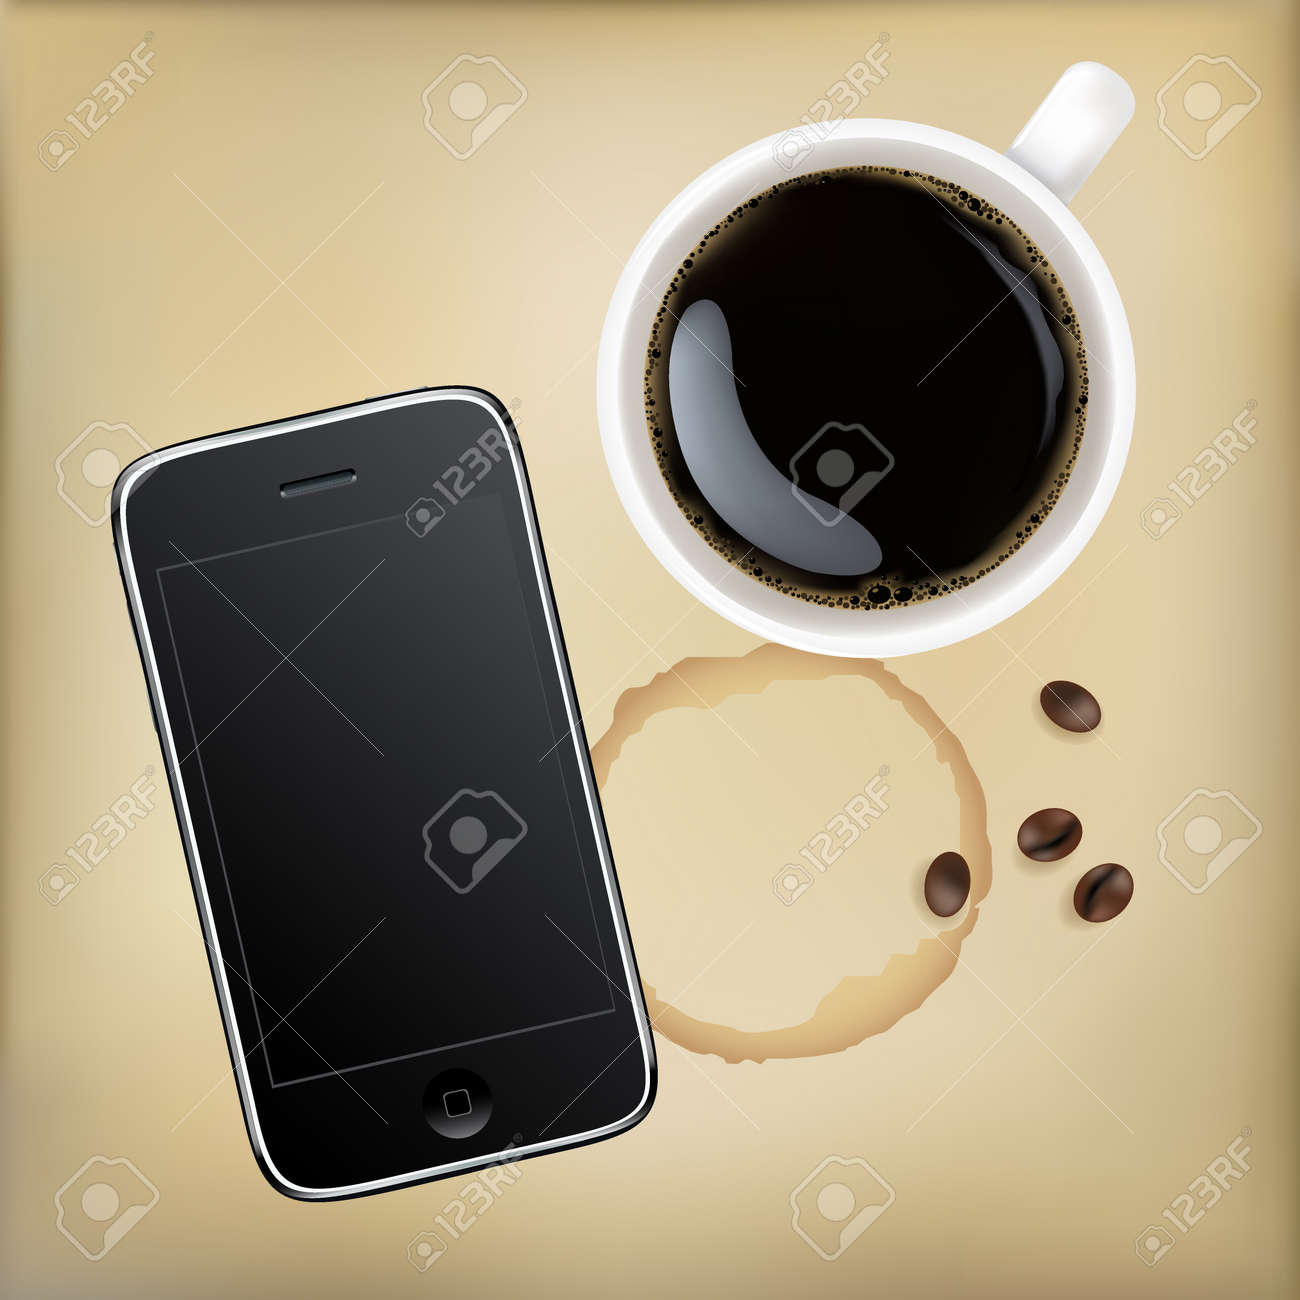 Mobile Phone With Cup Of Coffee, Vector Illustration Stock Vector - 14499516